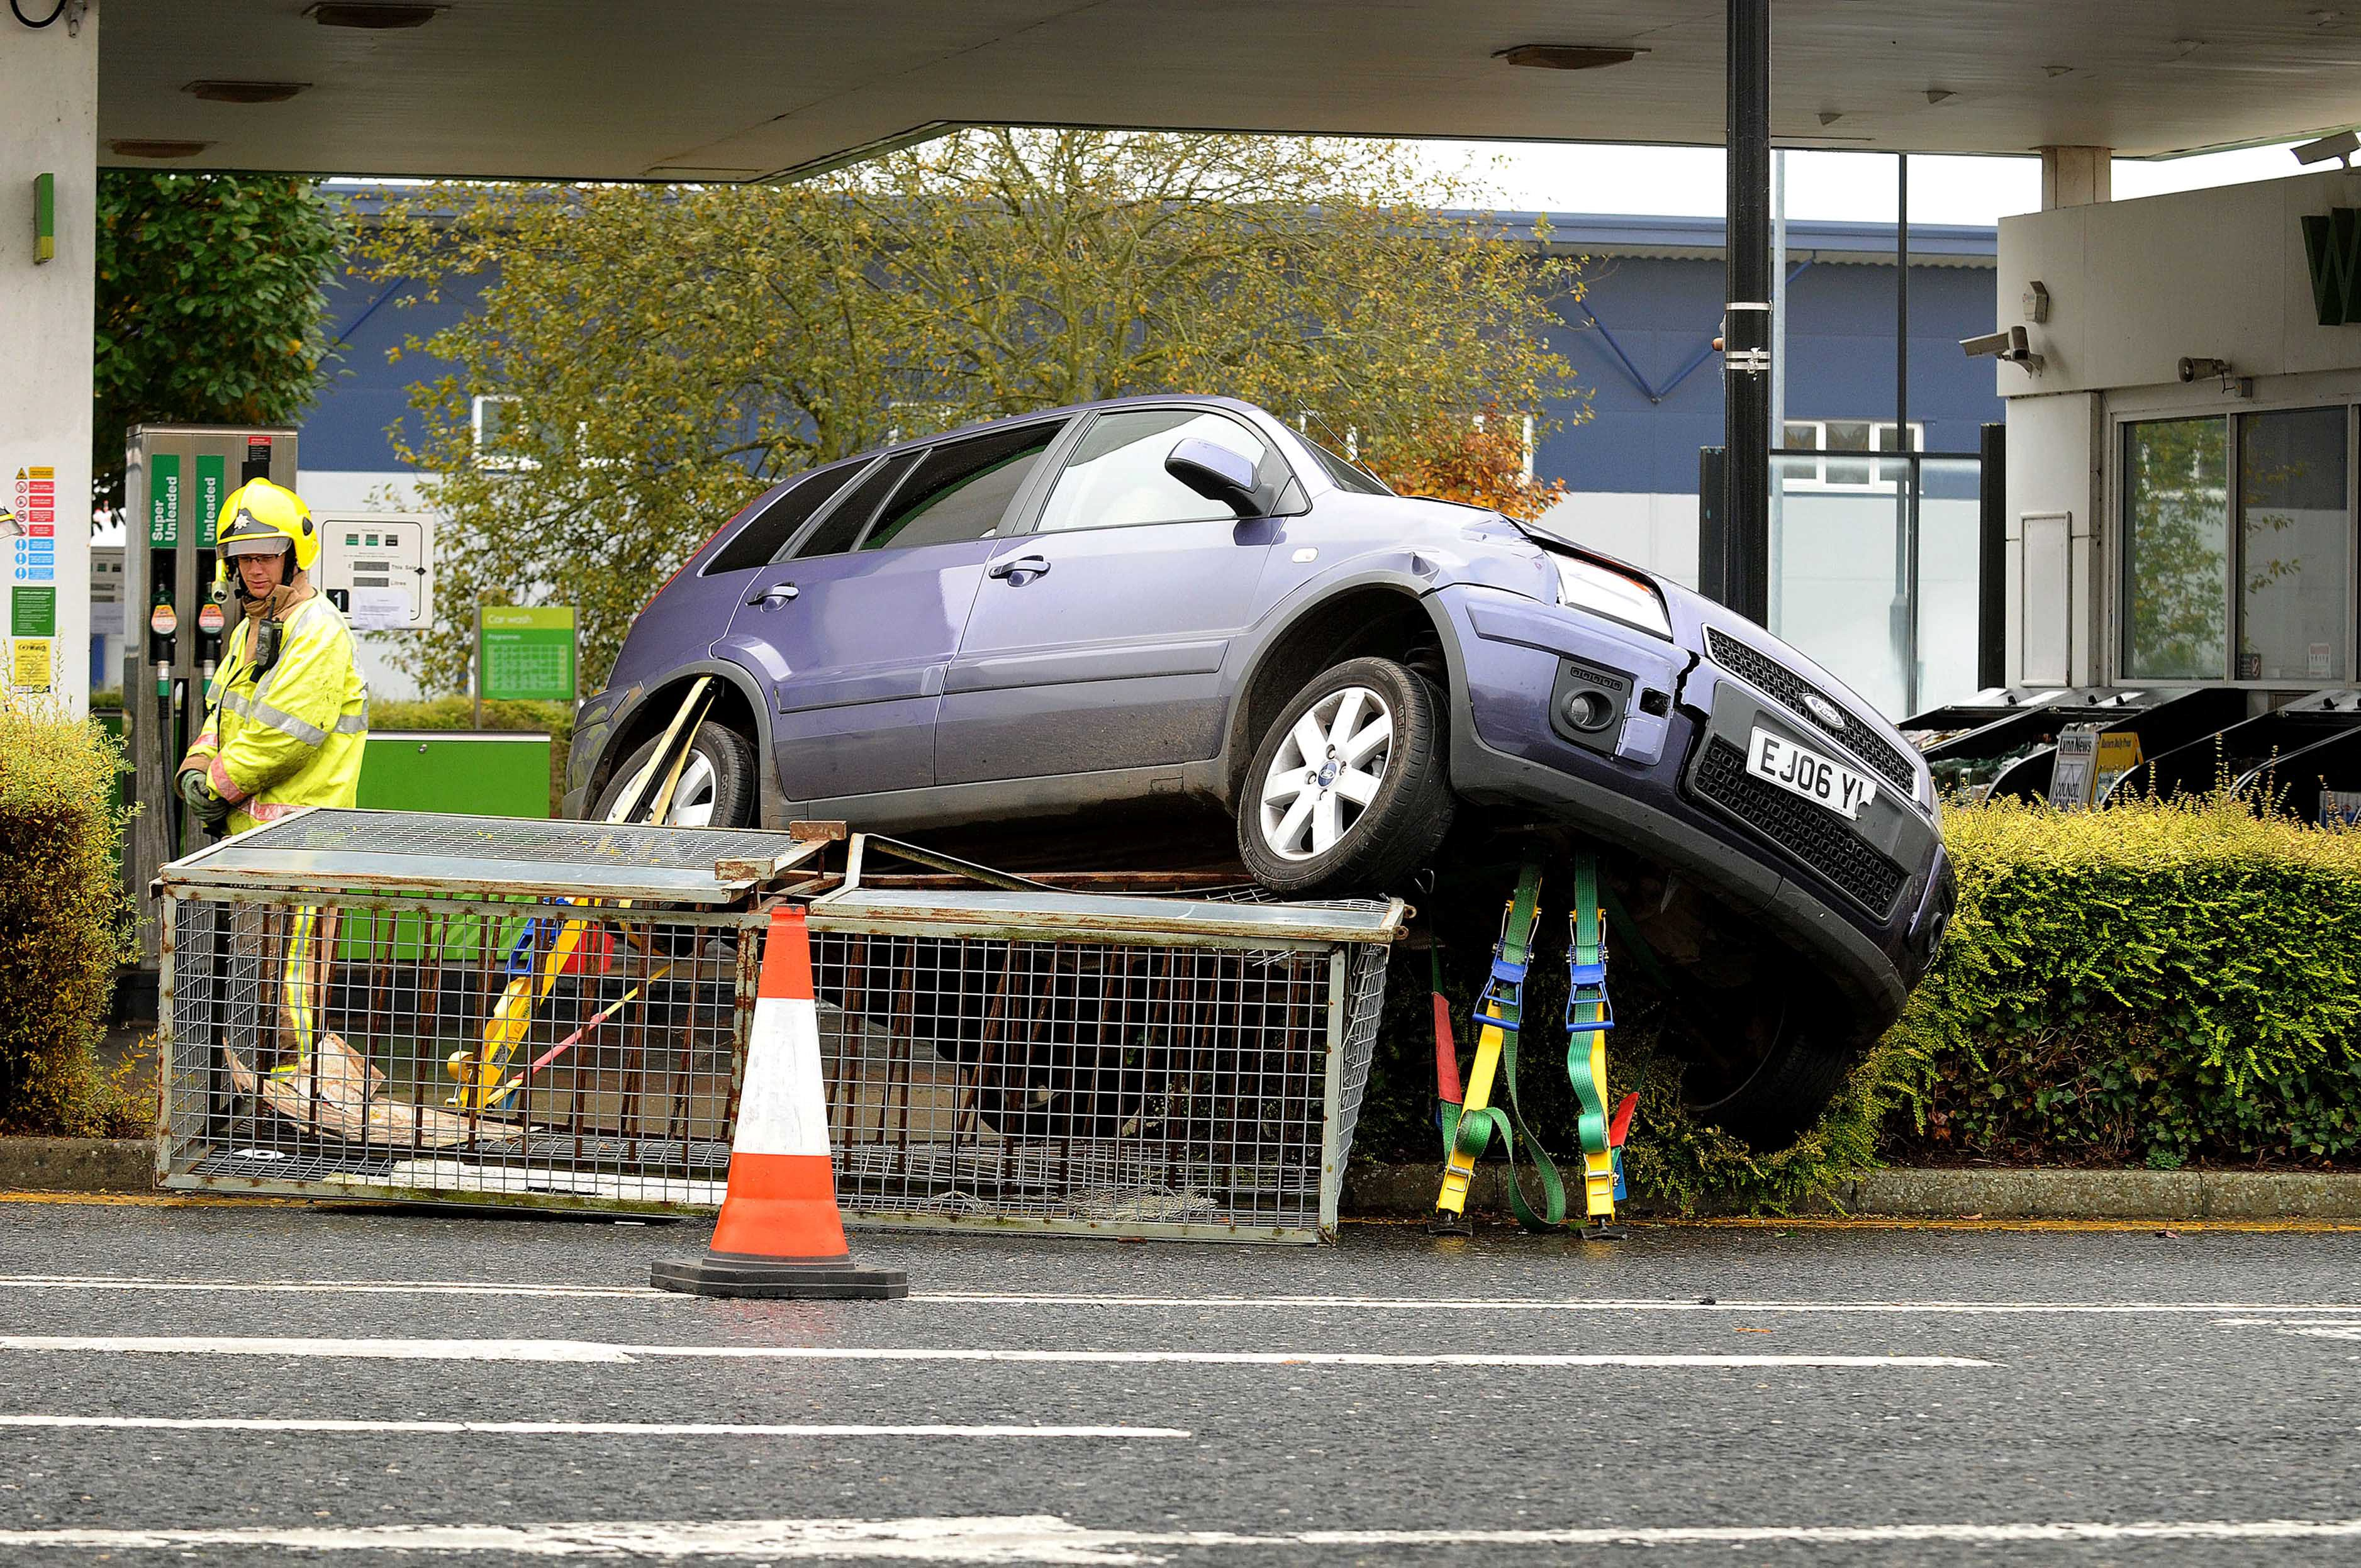 The pensioner's Ford Fusion car sits on top of gas containers at Waitrose in Kings Lynn, Norfolk